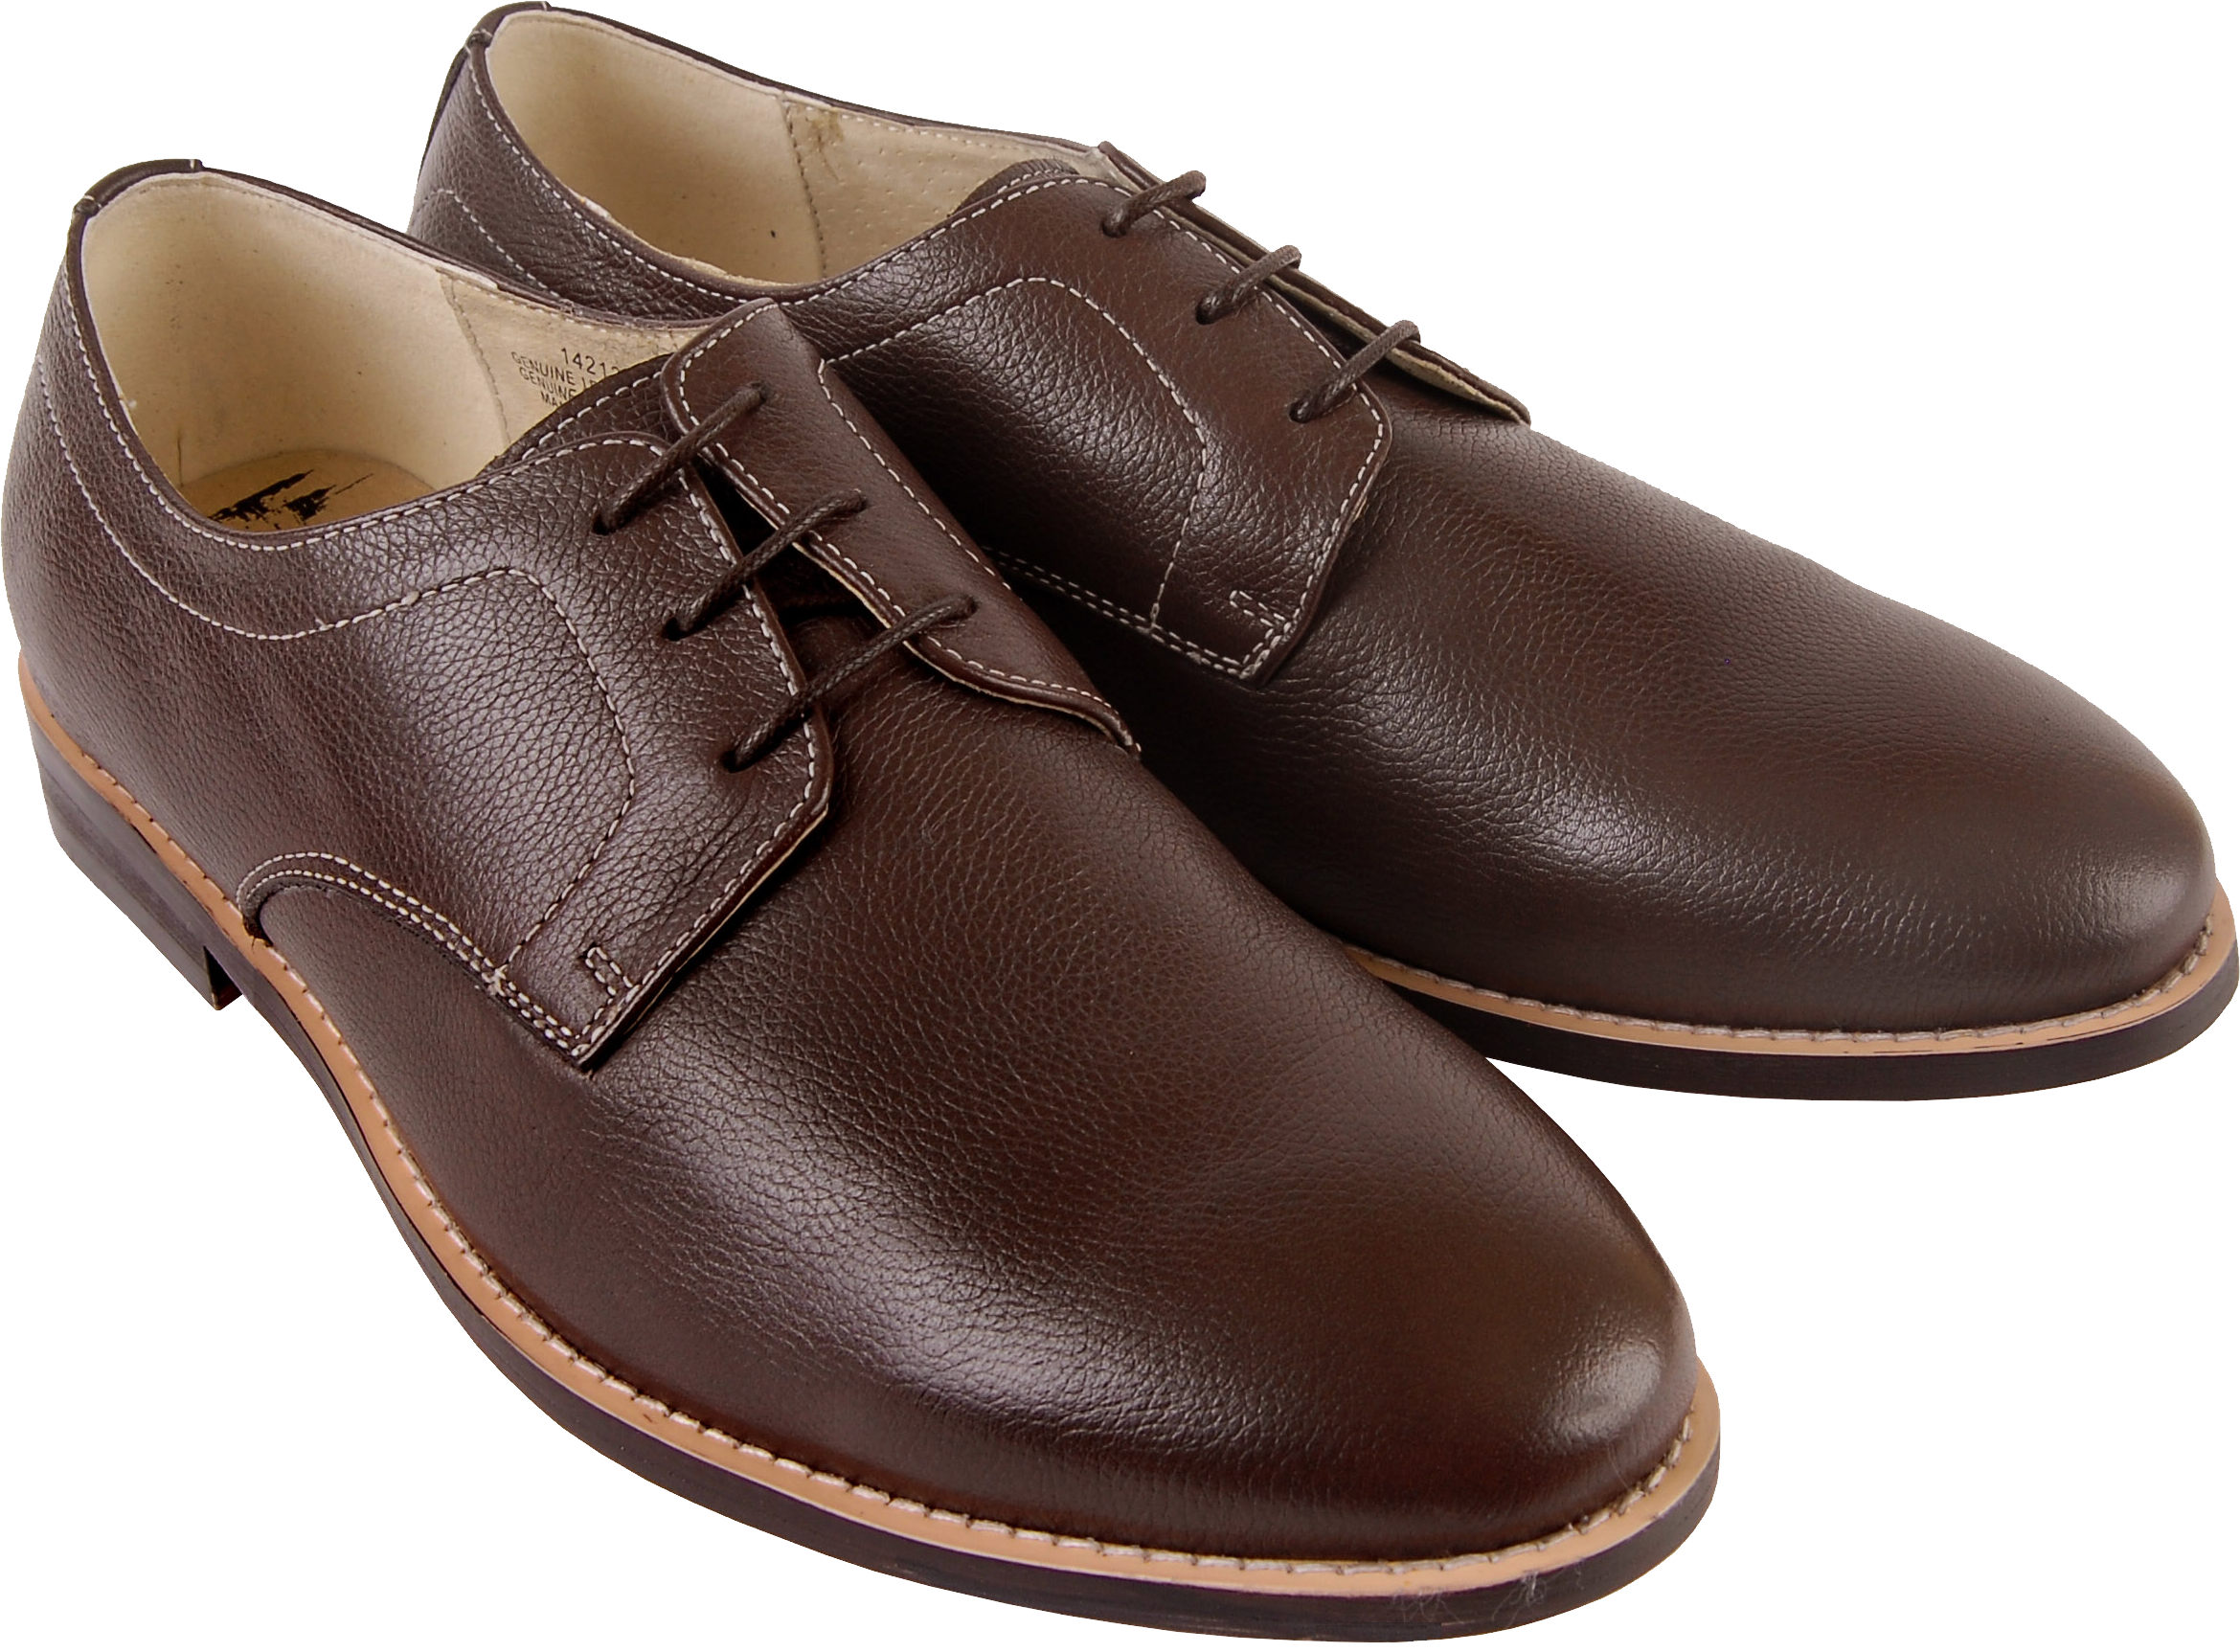 Brown men shoes PNG image - Shoes PNG